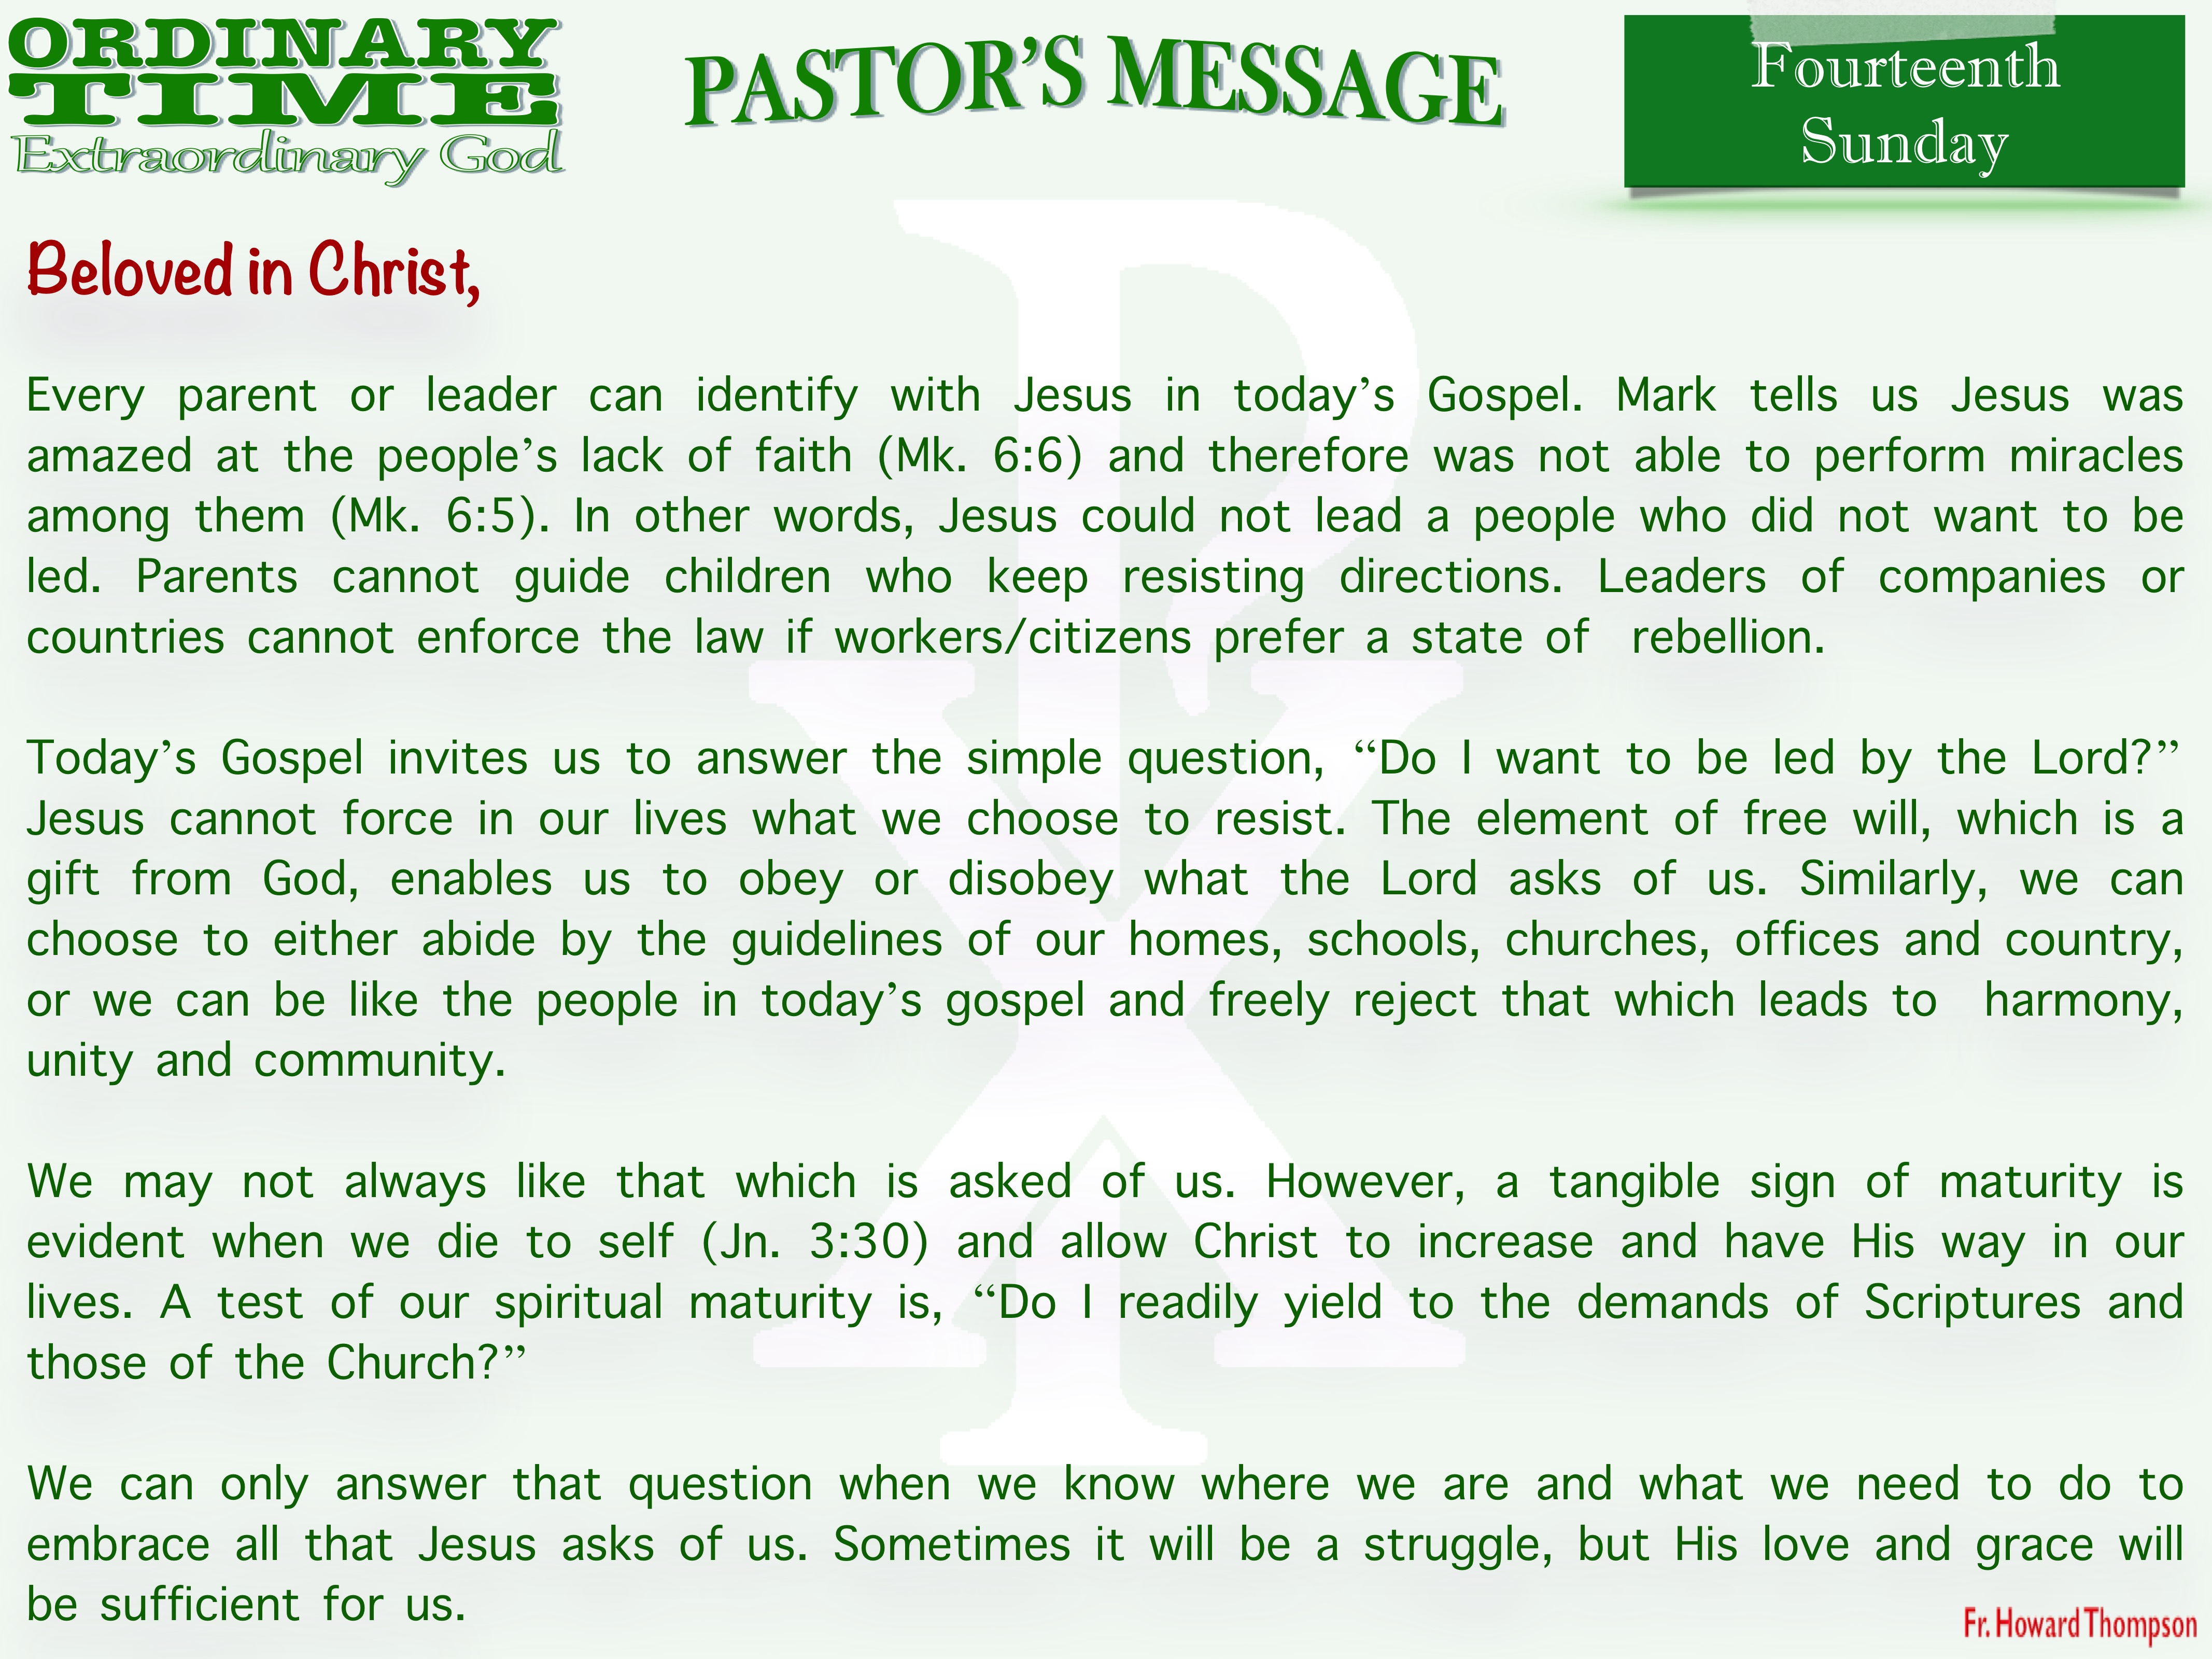 Pastor's Message - 23 Fourteenth Sunday in Ordinary Time_001